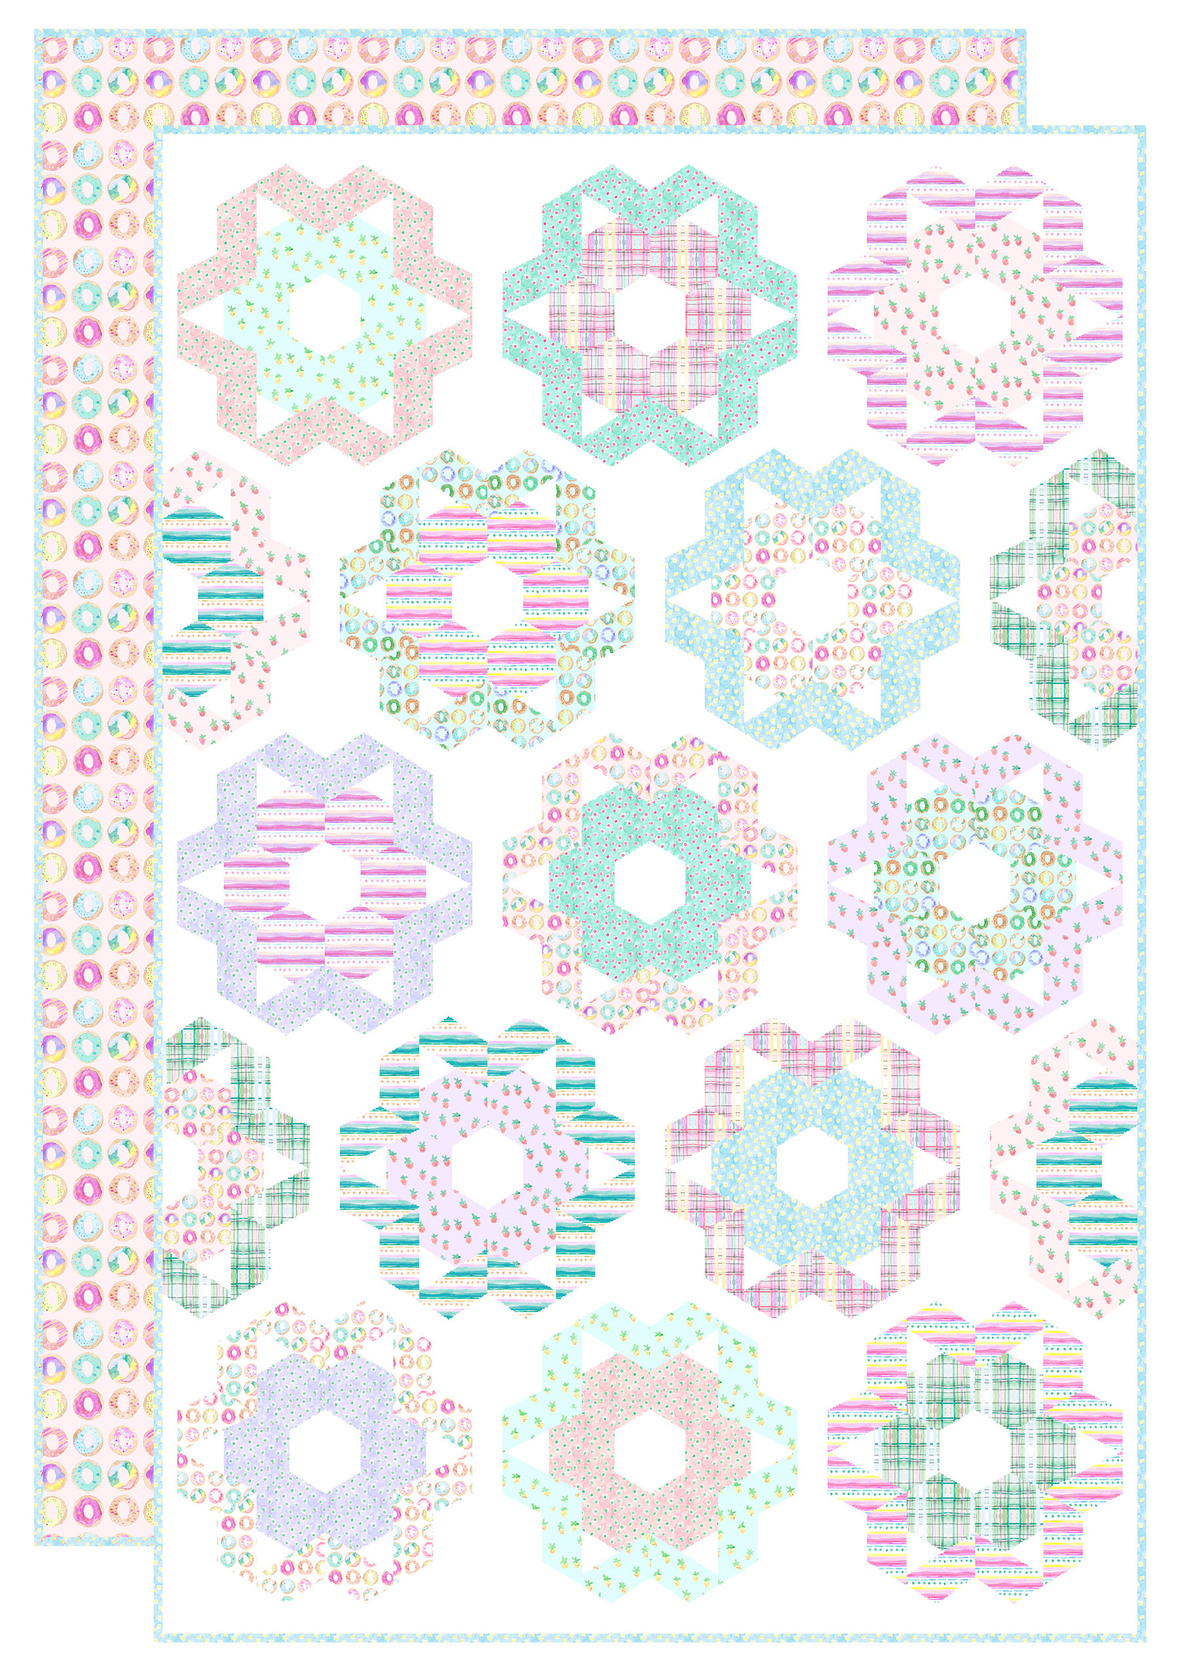 Glazed Donuts Quilt uses 1 FQ bundle plus binding and backing